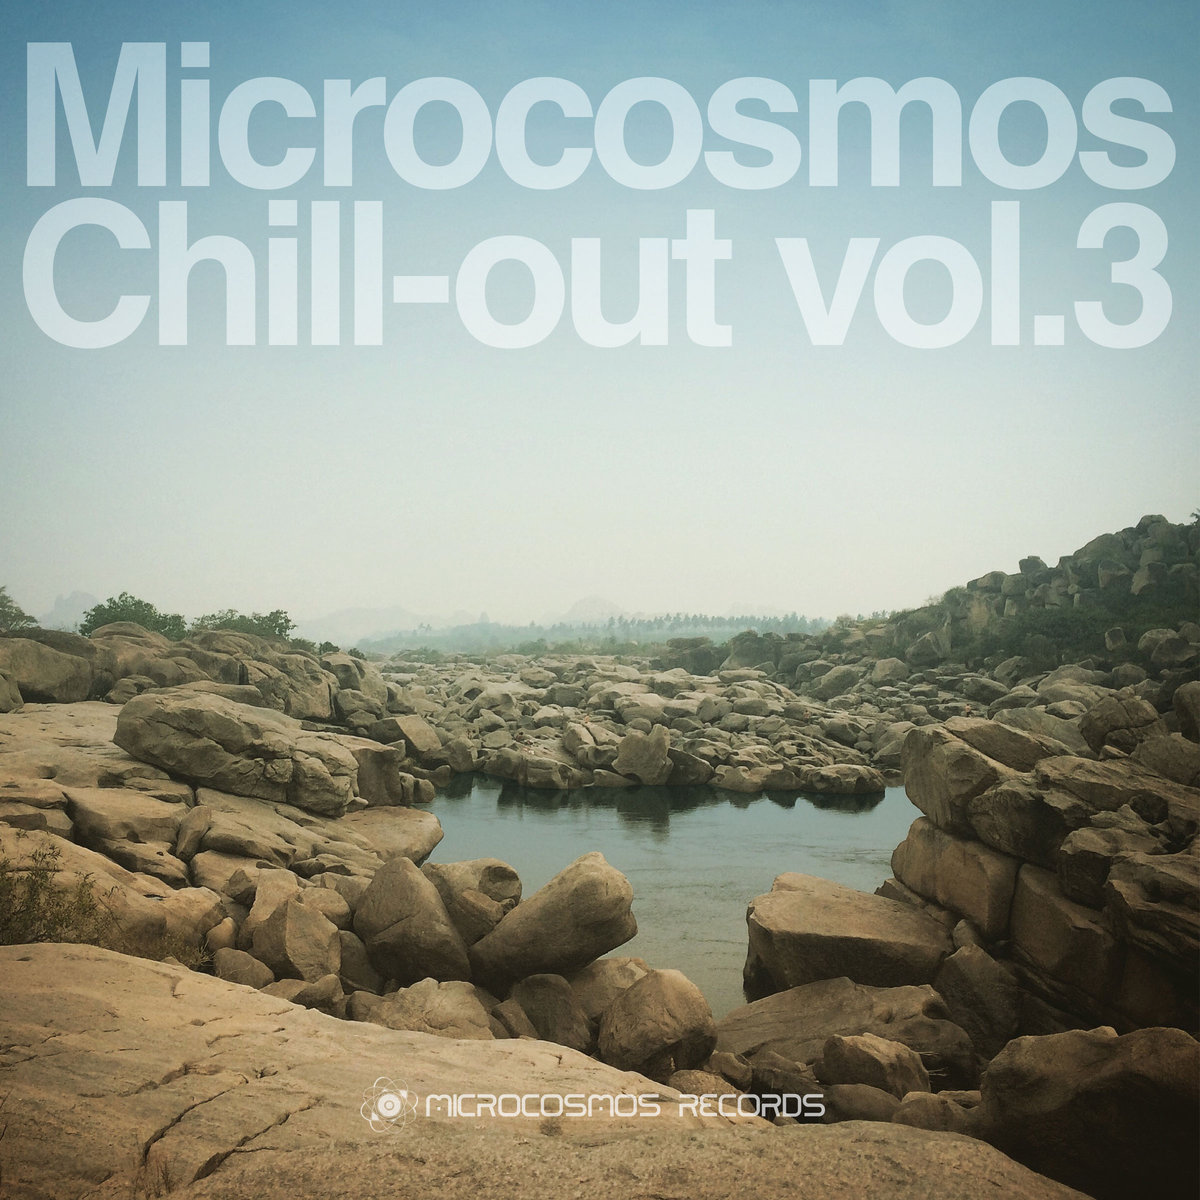 Germind - Bending Of Light @ 'Microcosmos Chill-out Vol.3' album (ambient, chill-out)